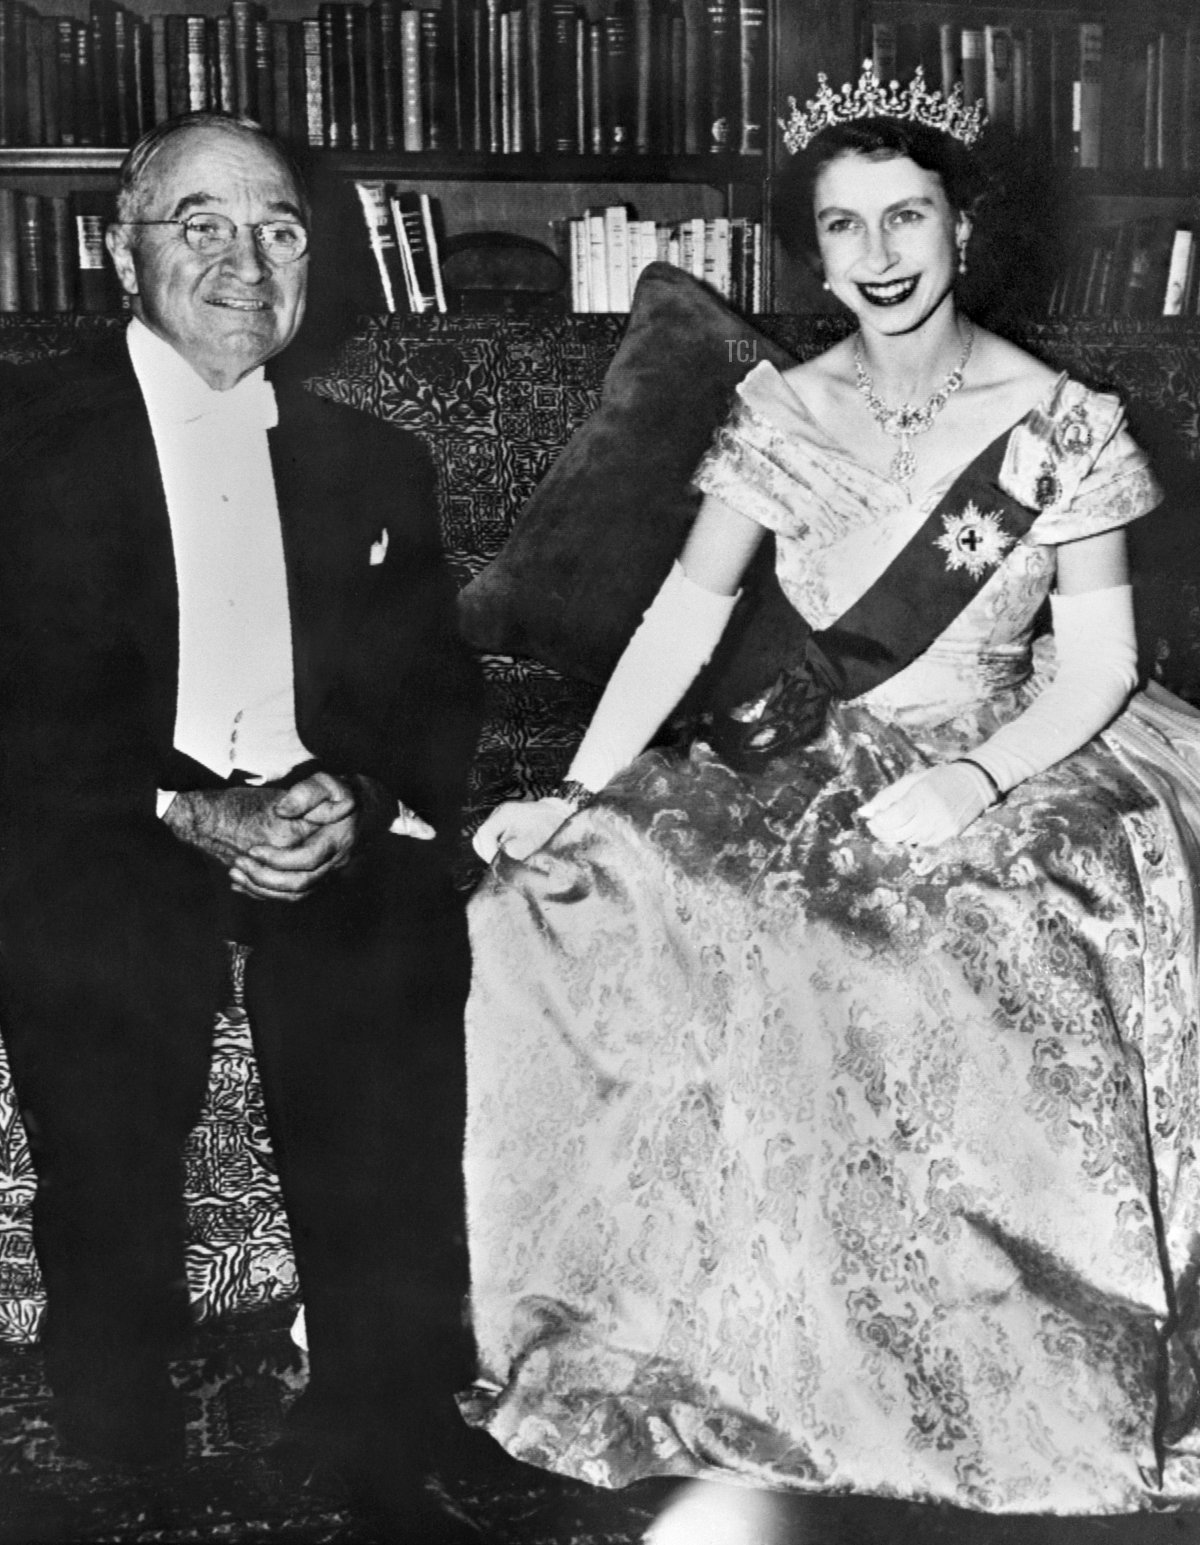 The Princess Elizabeth of England, the future Queen Elizabeth II, poses with American President Harry Truman in October 1951 at the White House in Washington